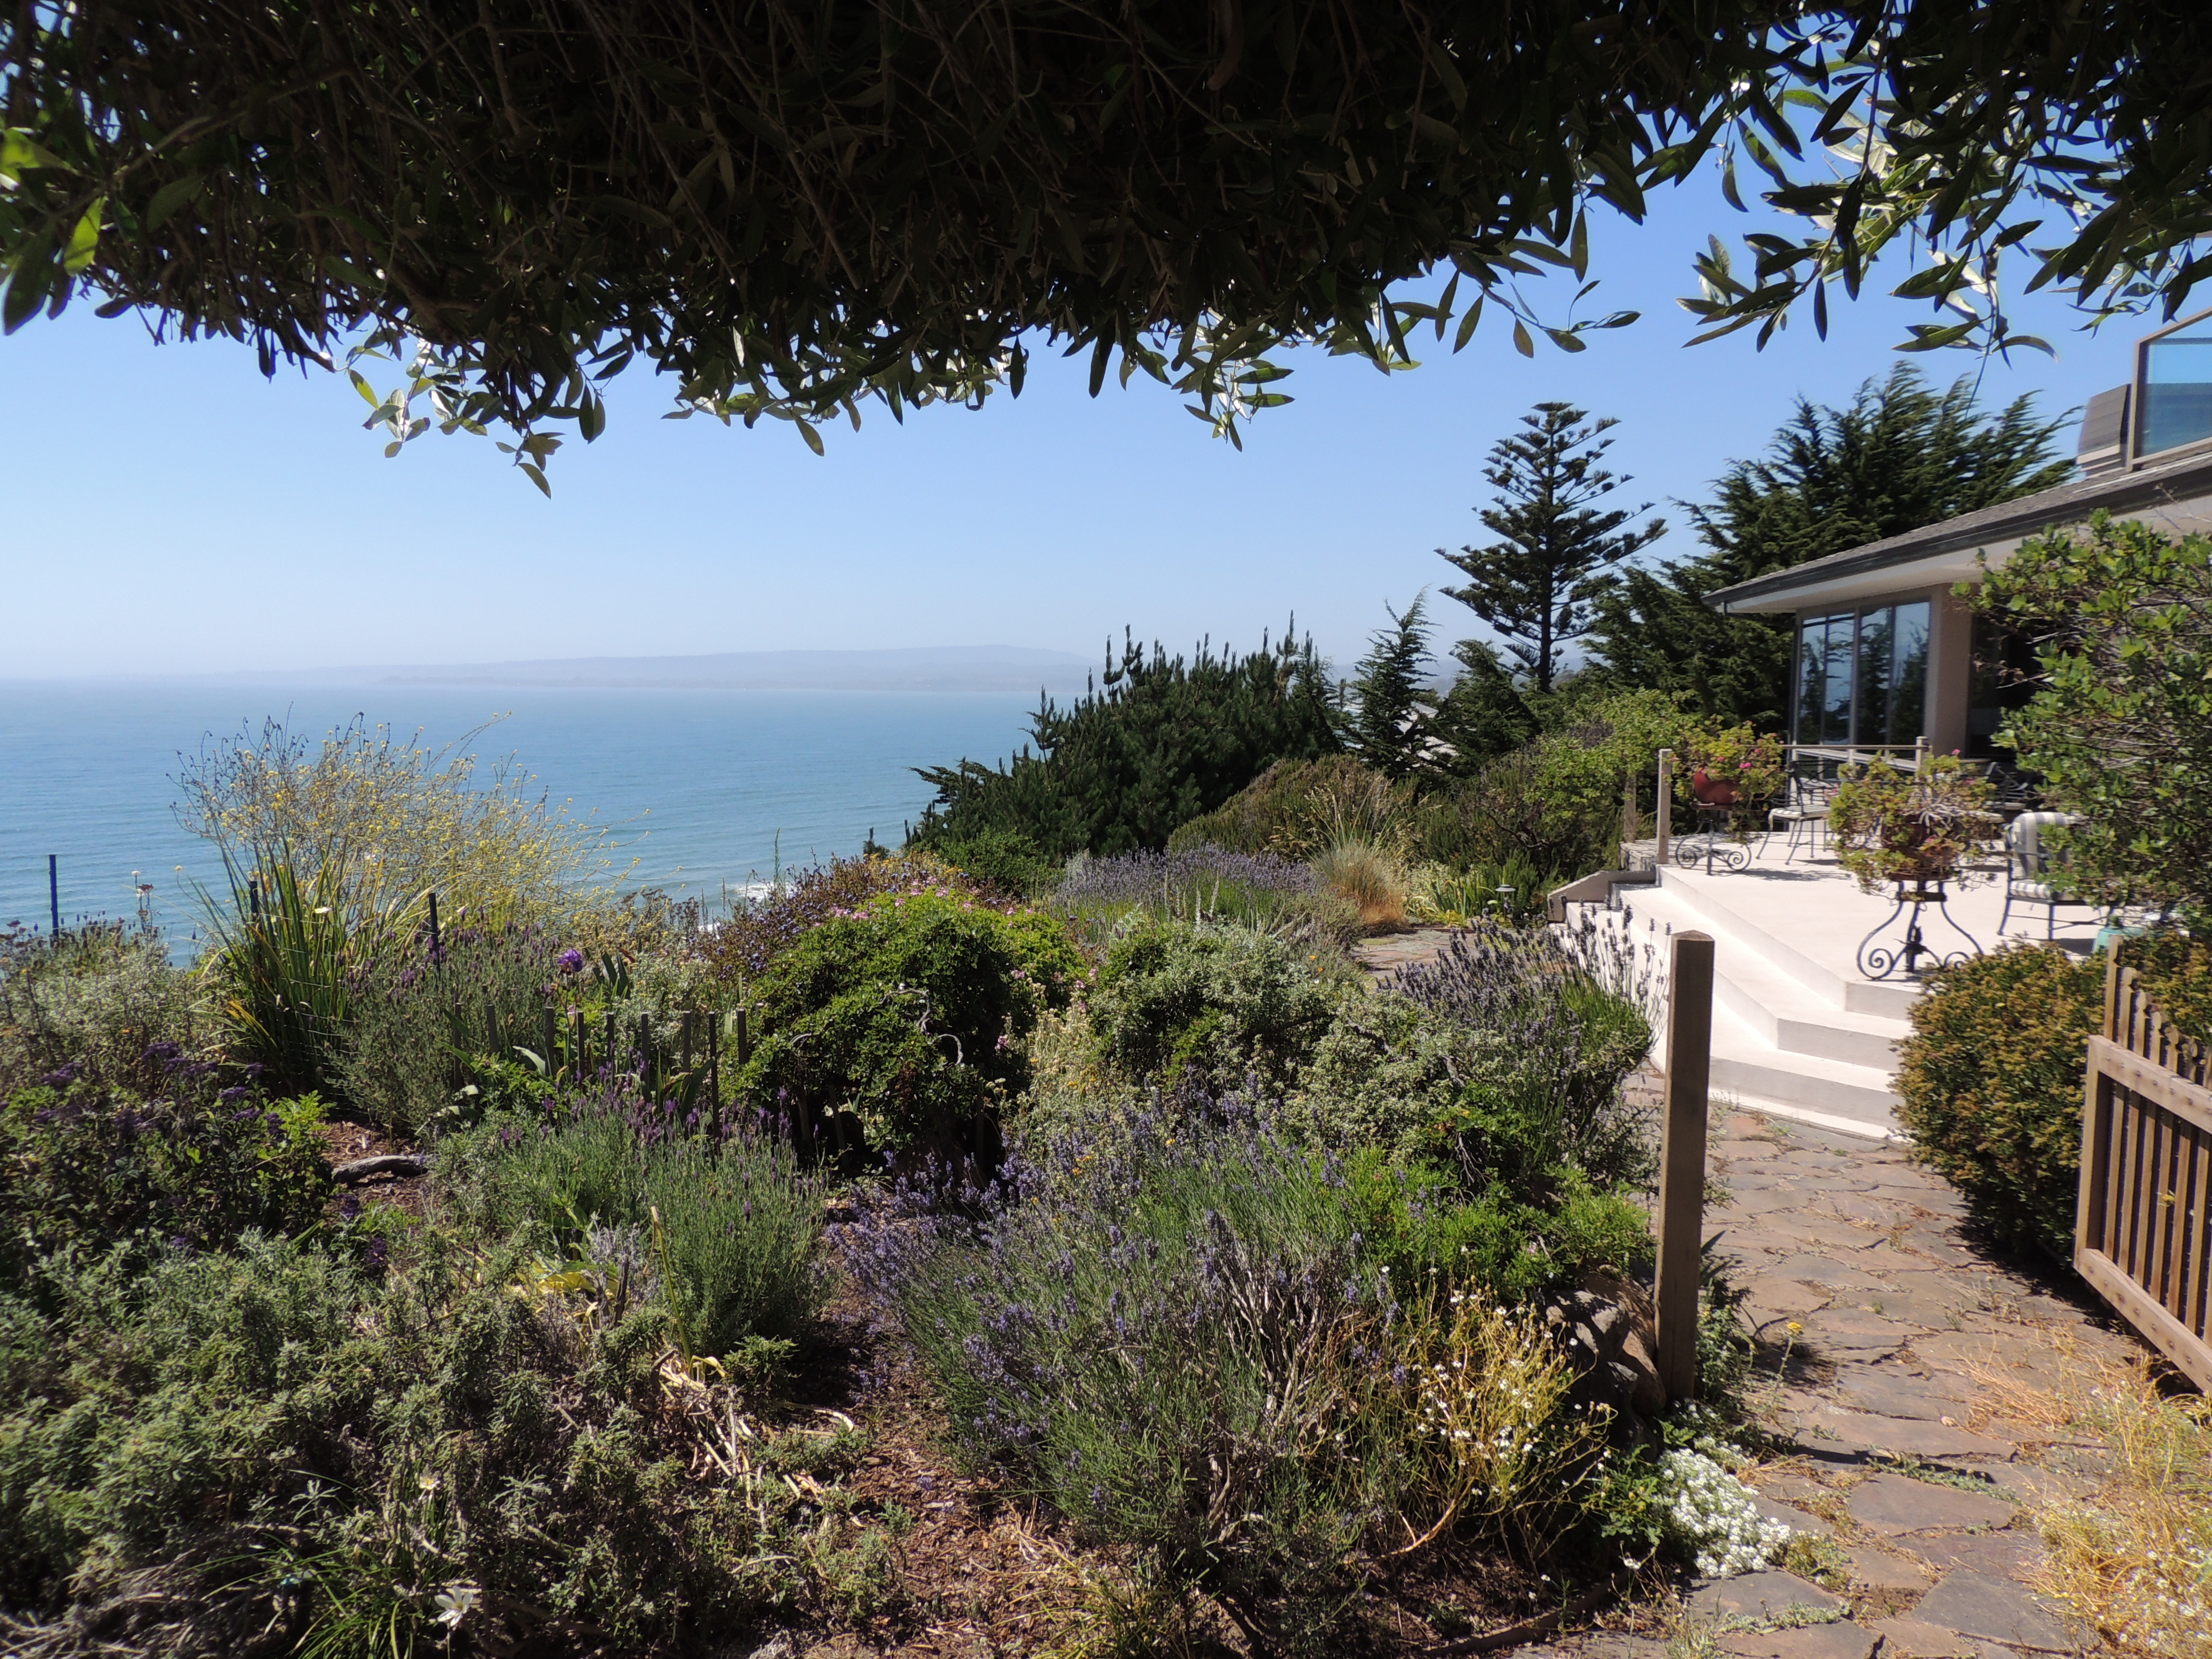 Culinary Journey Through the History of California - Dinner for 8 people in beautiful La Selva Beach.